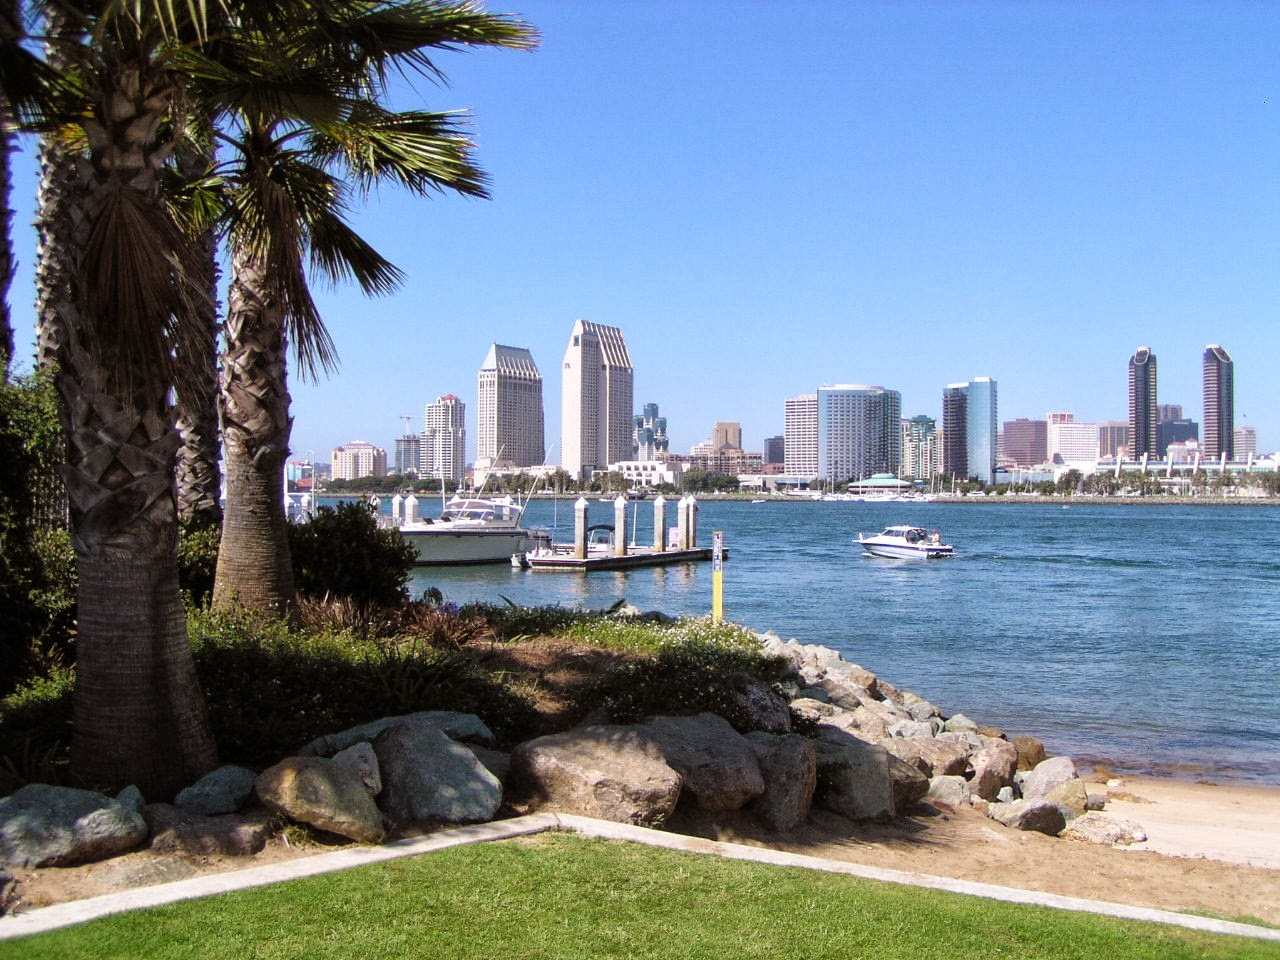 Among the cities visited was the city of san diego we participated in